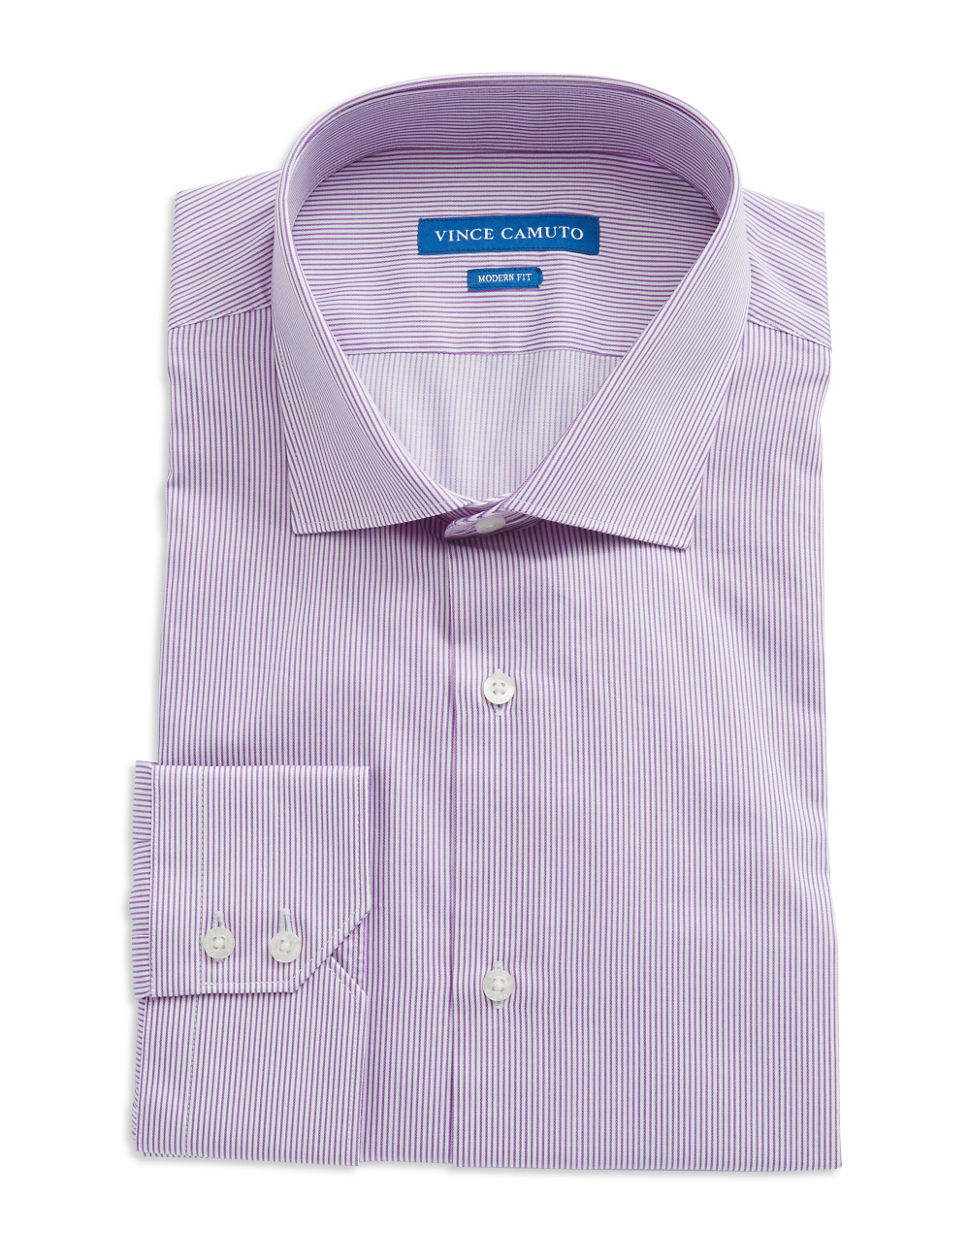 Vince camuto modern fit striped dress shirt in purple for for Modern fit dress shirt